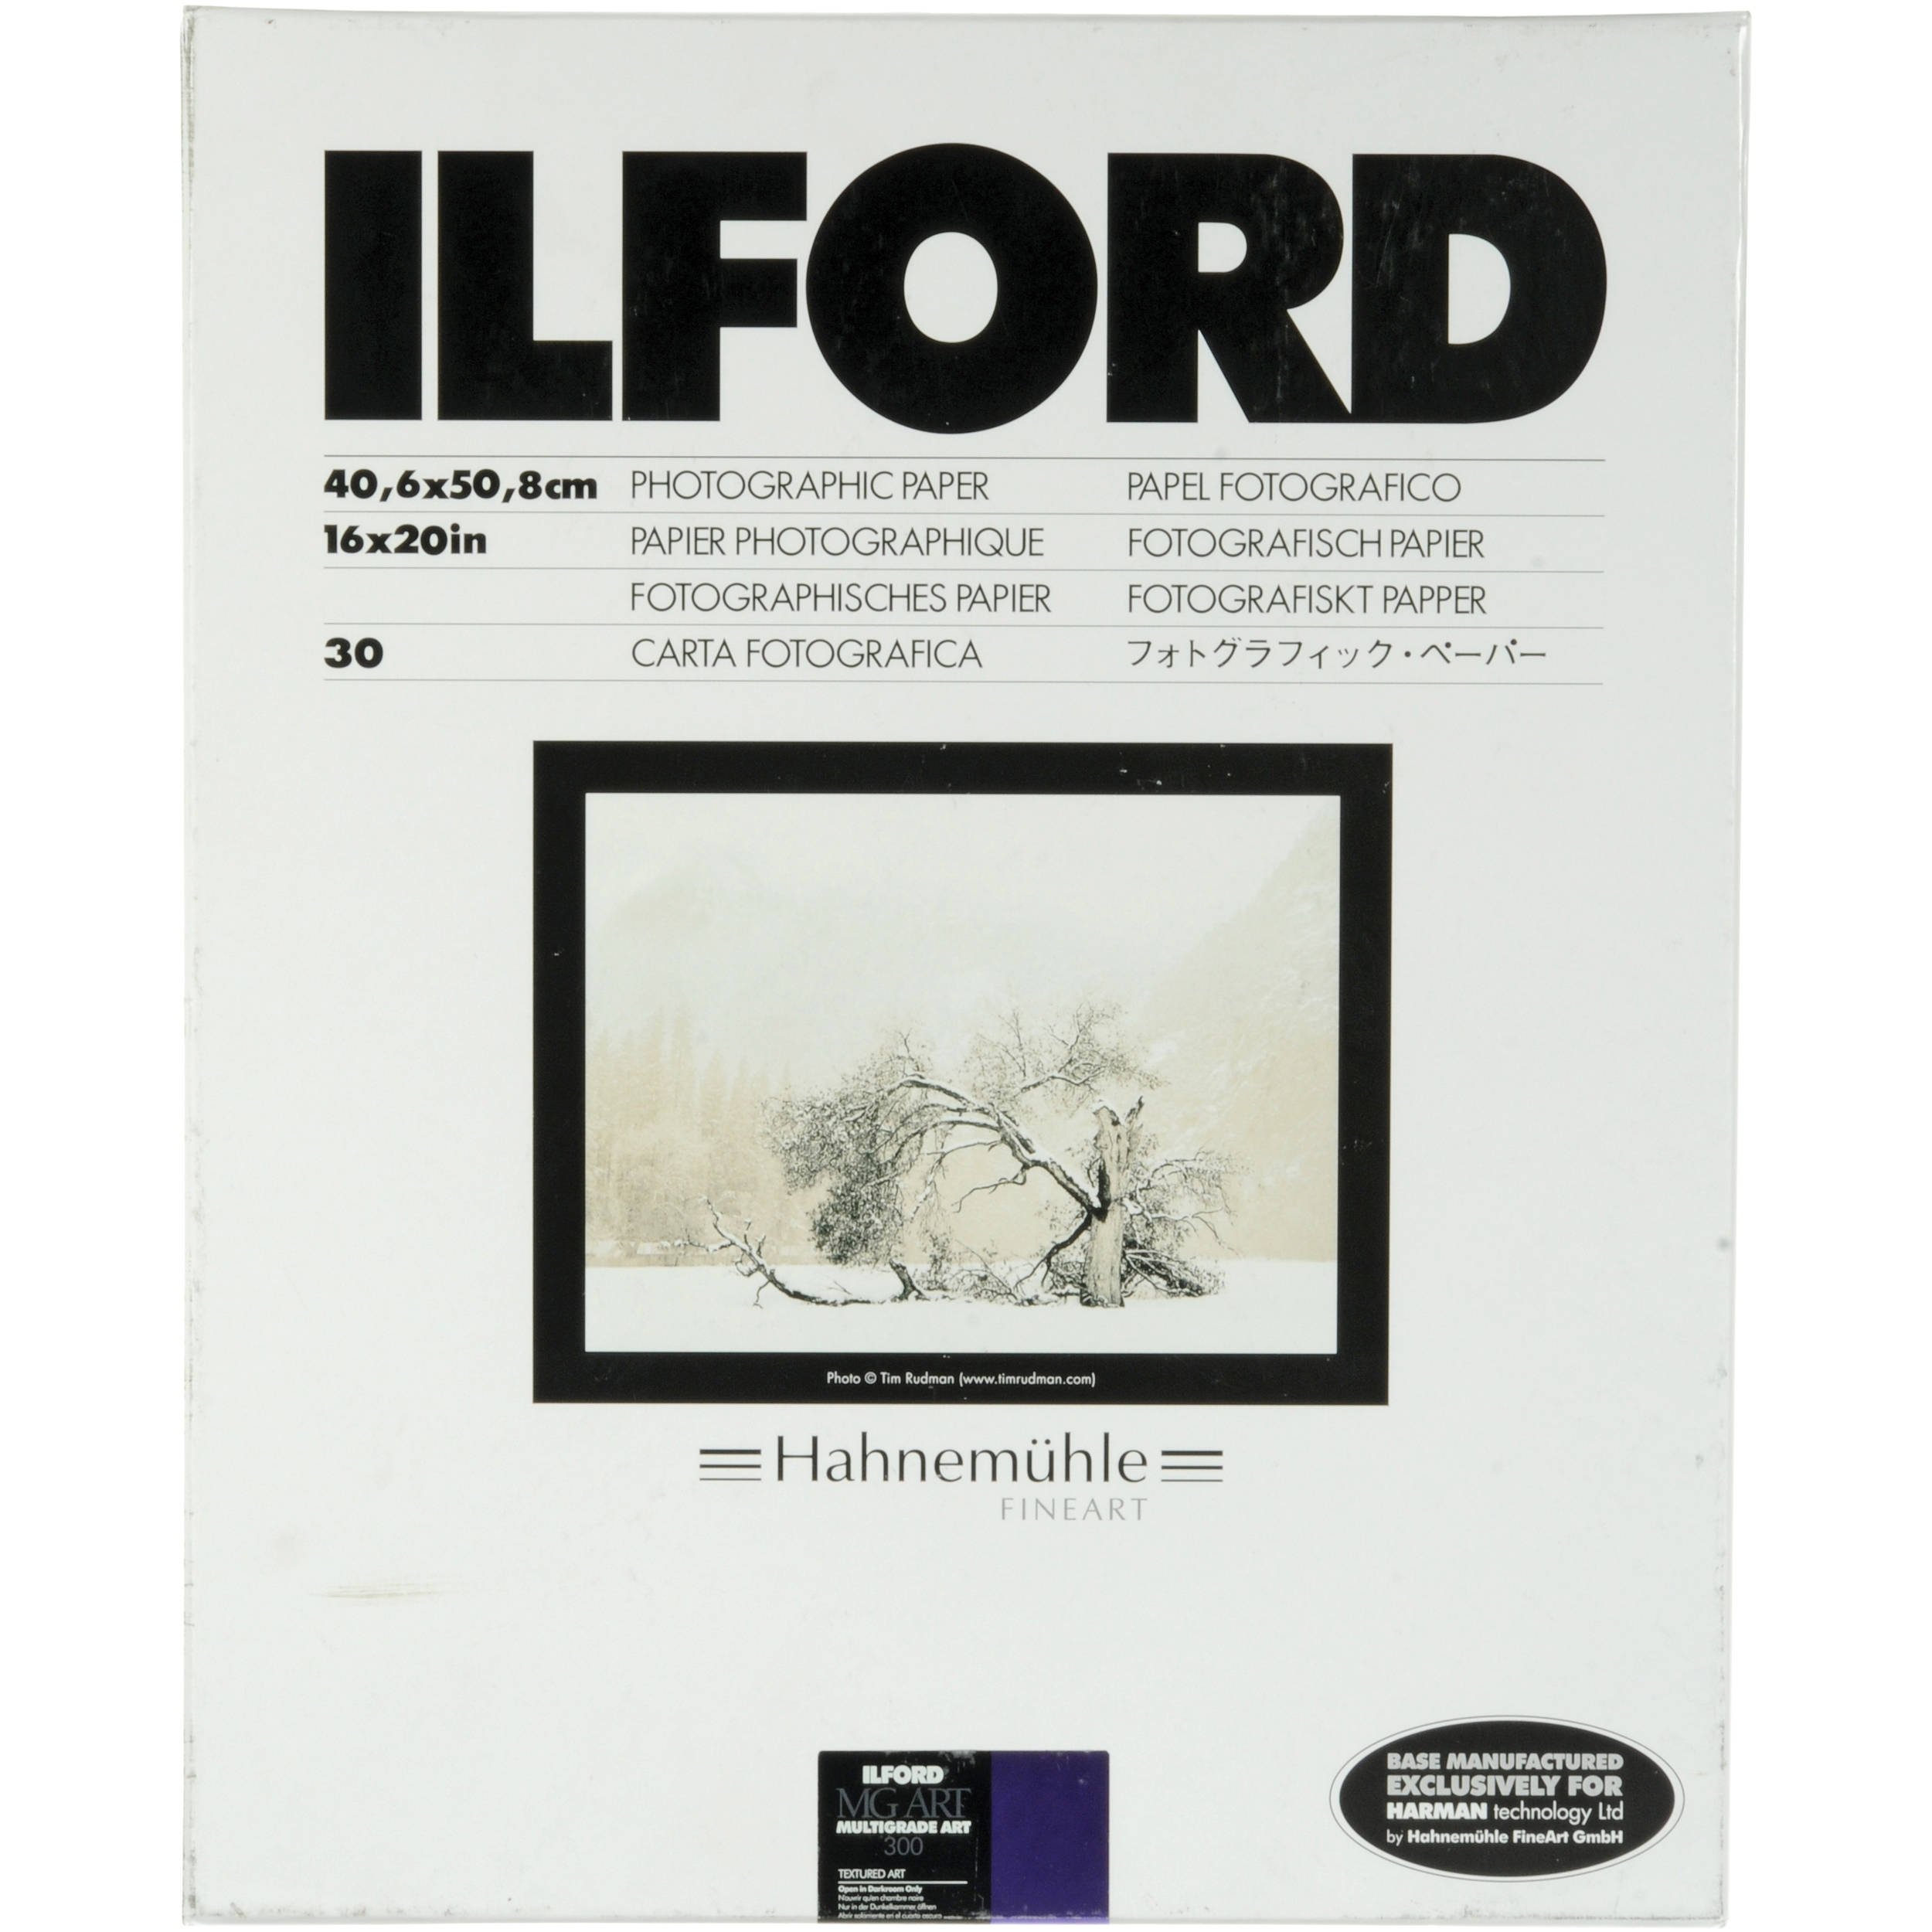 Ilford Black & White Paper - Buy at Adorama